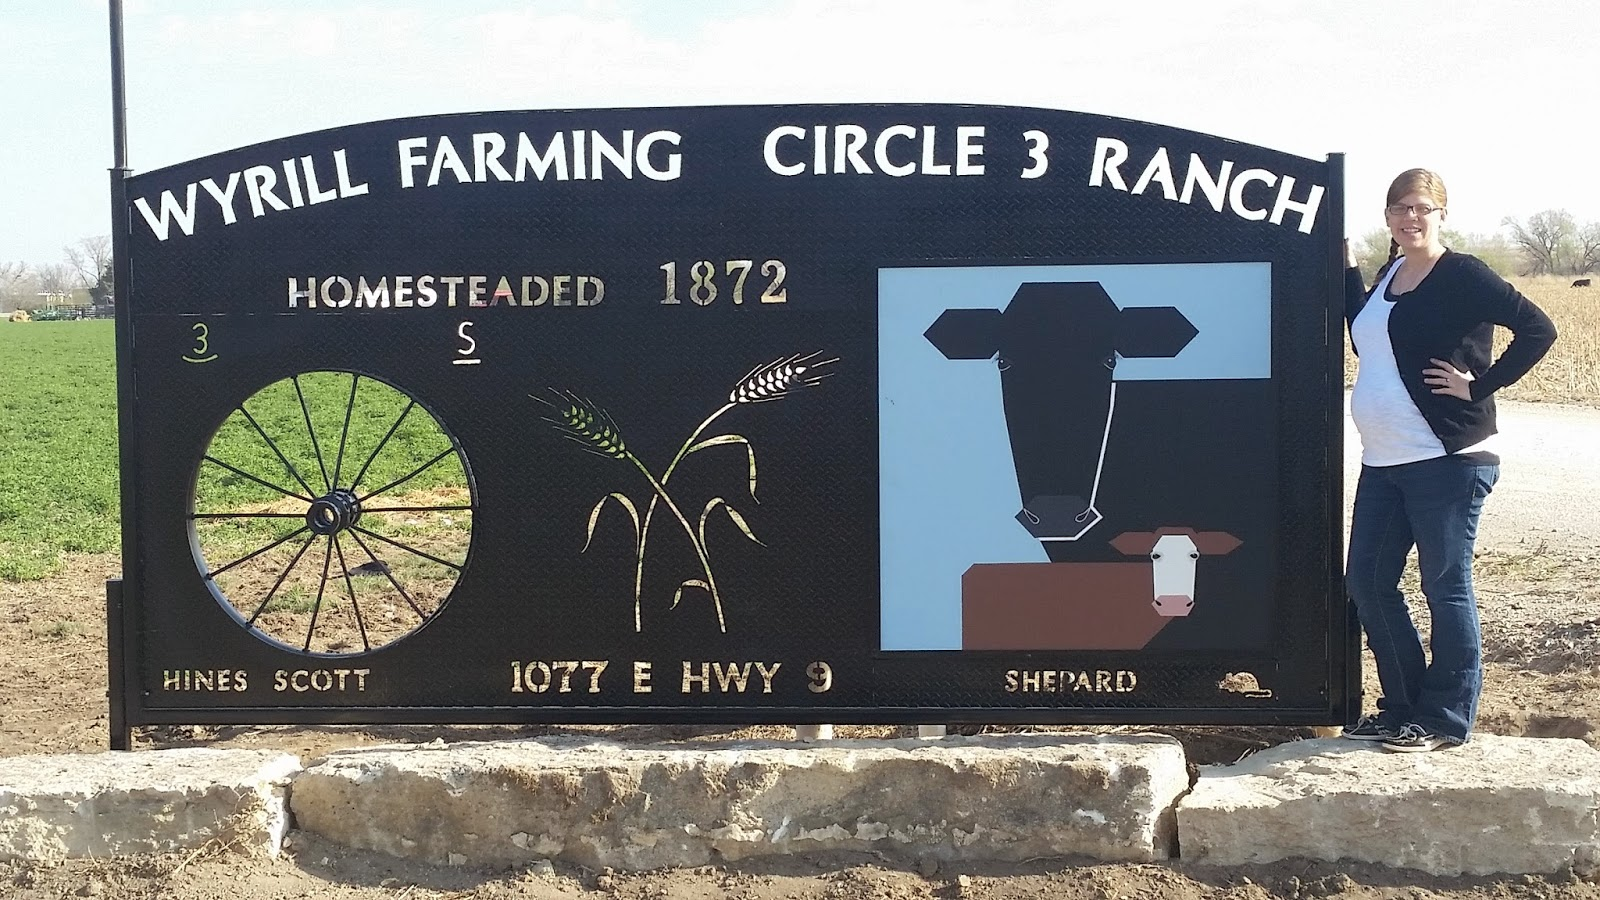 Kansas phillips county kirwin - Jessica Wyrill Poses Beside Her Barn Quilt That Became Part Of The Wyrill Farming Family Ranch Sign Near Kirwin Phillips County